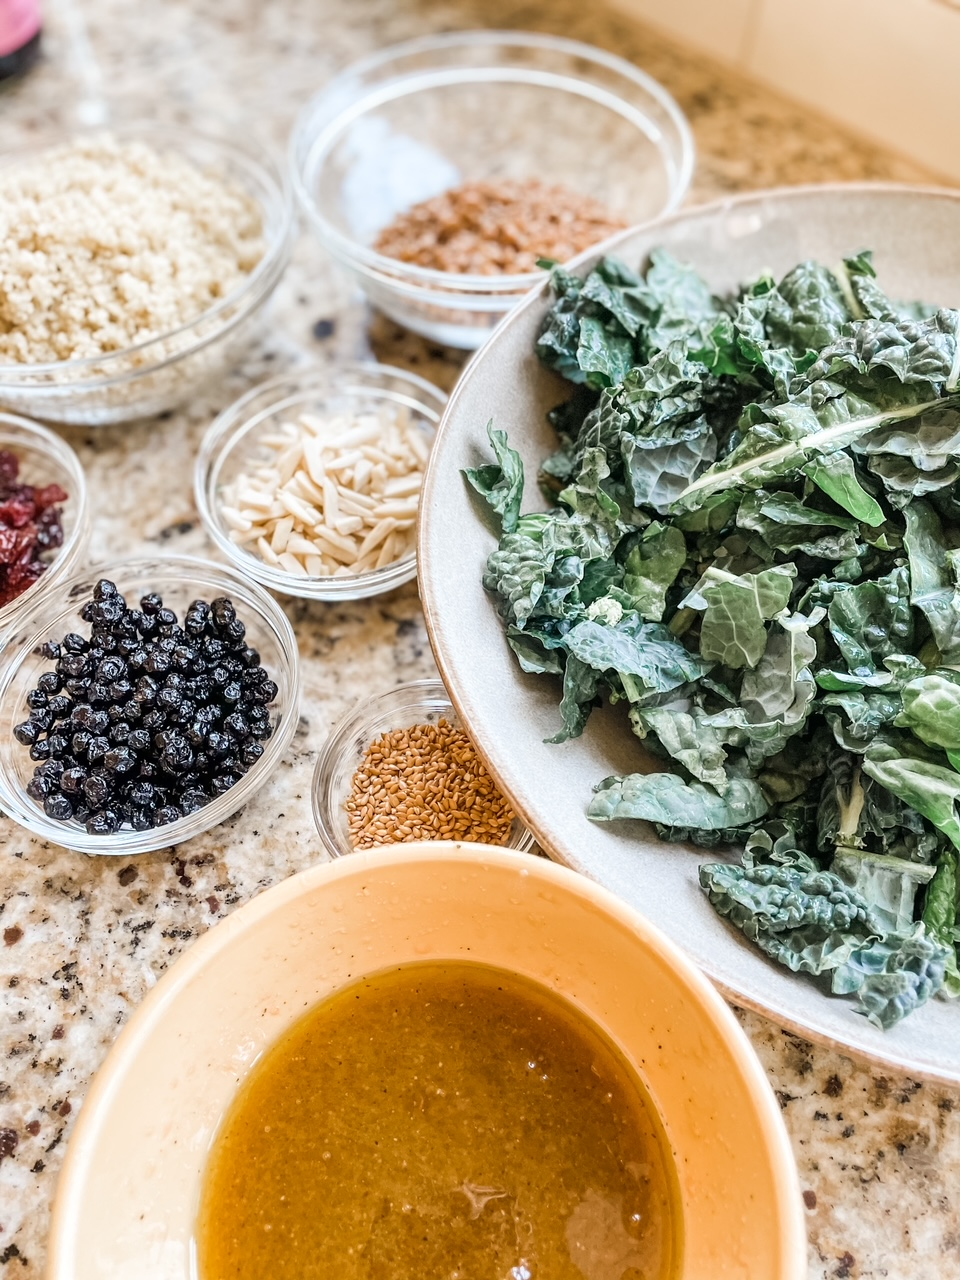 The ingredients for the Superfood Salad Recipe laid out in individual bowls.